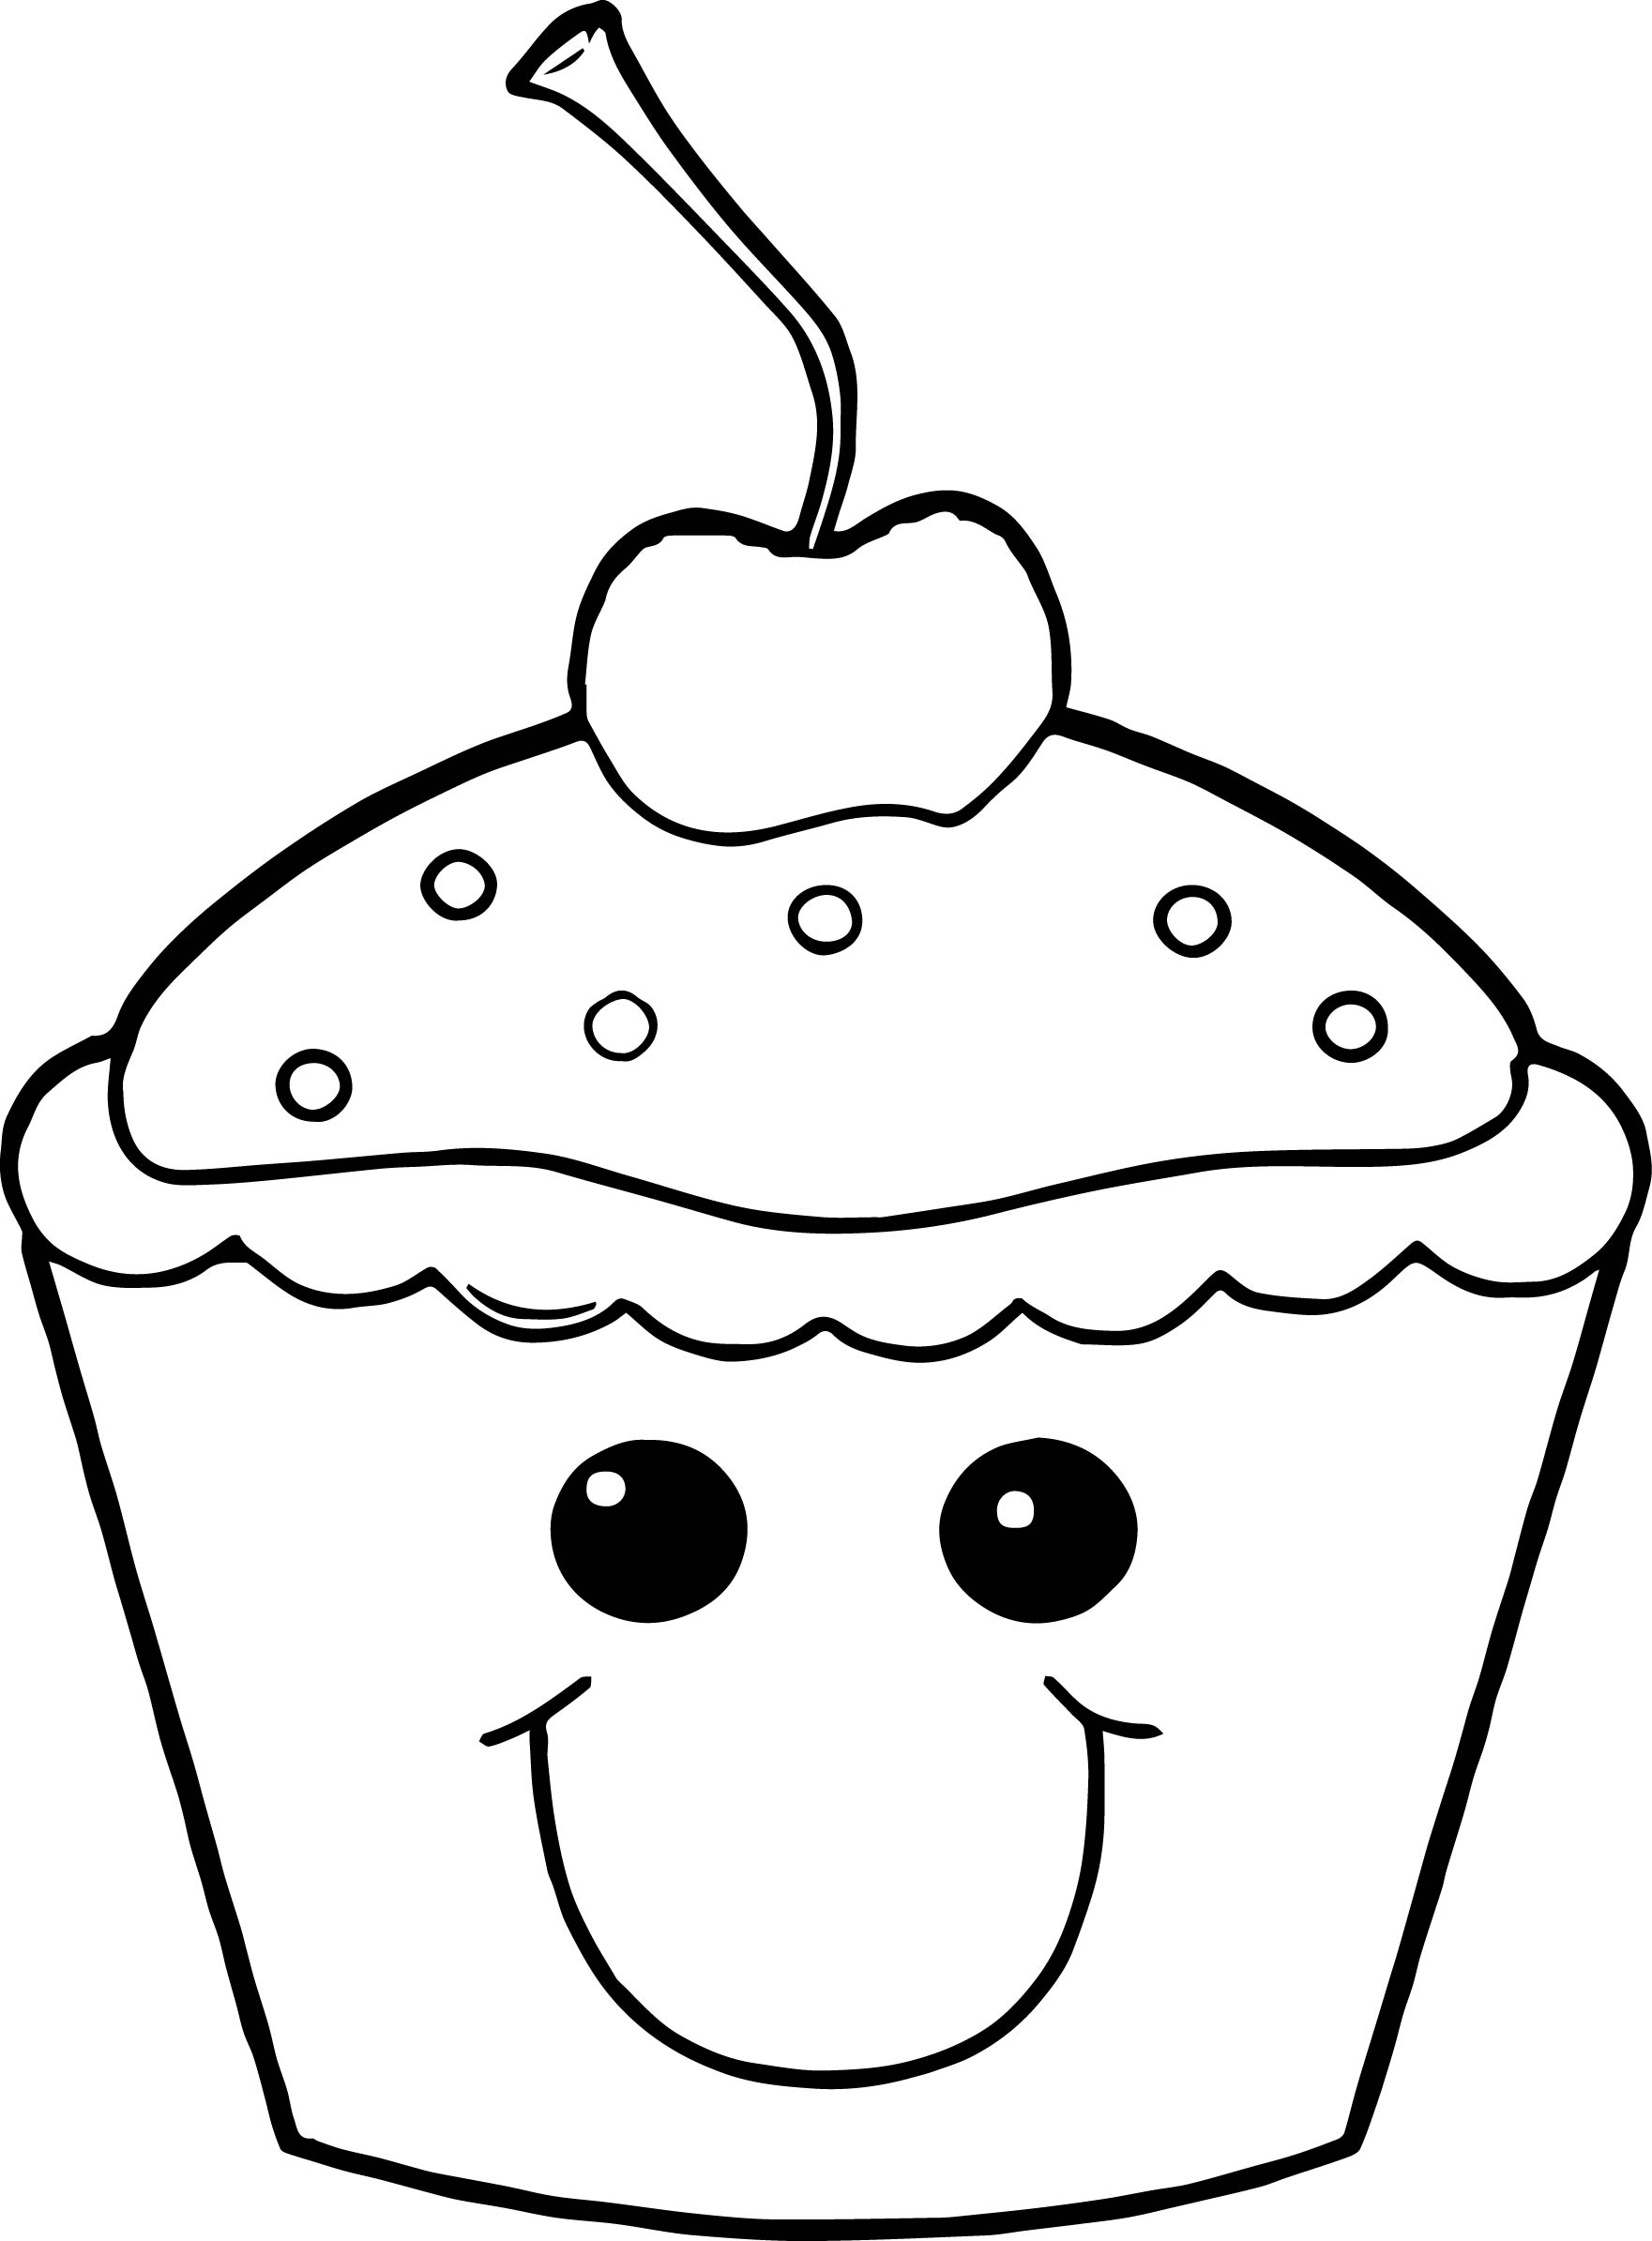 Cartoon Cupcake Coloring Pages Coloring Page